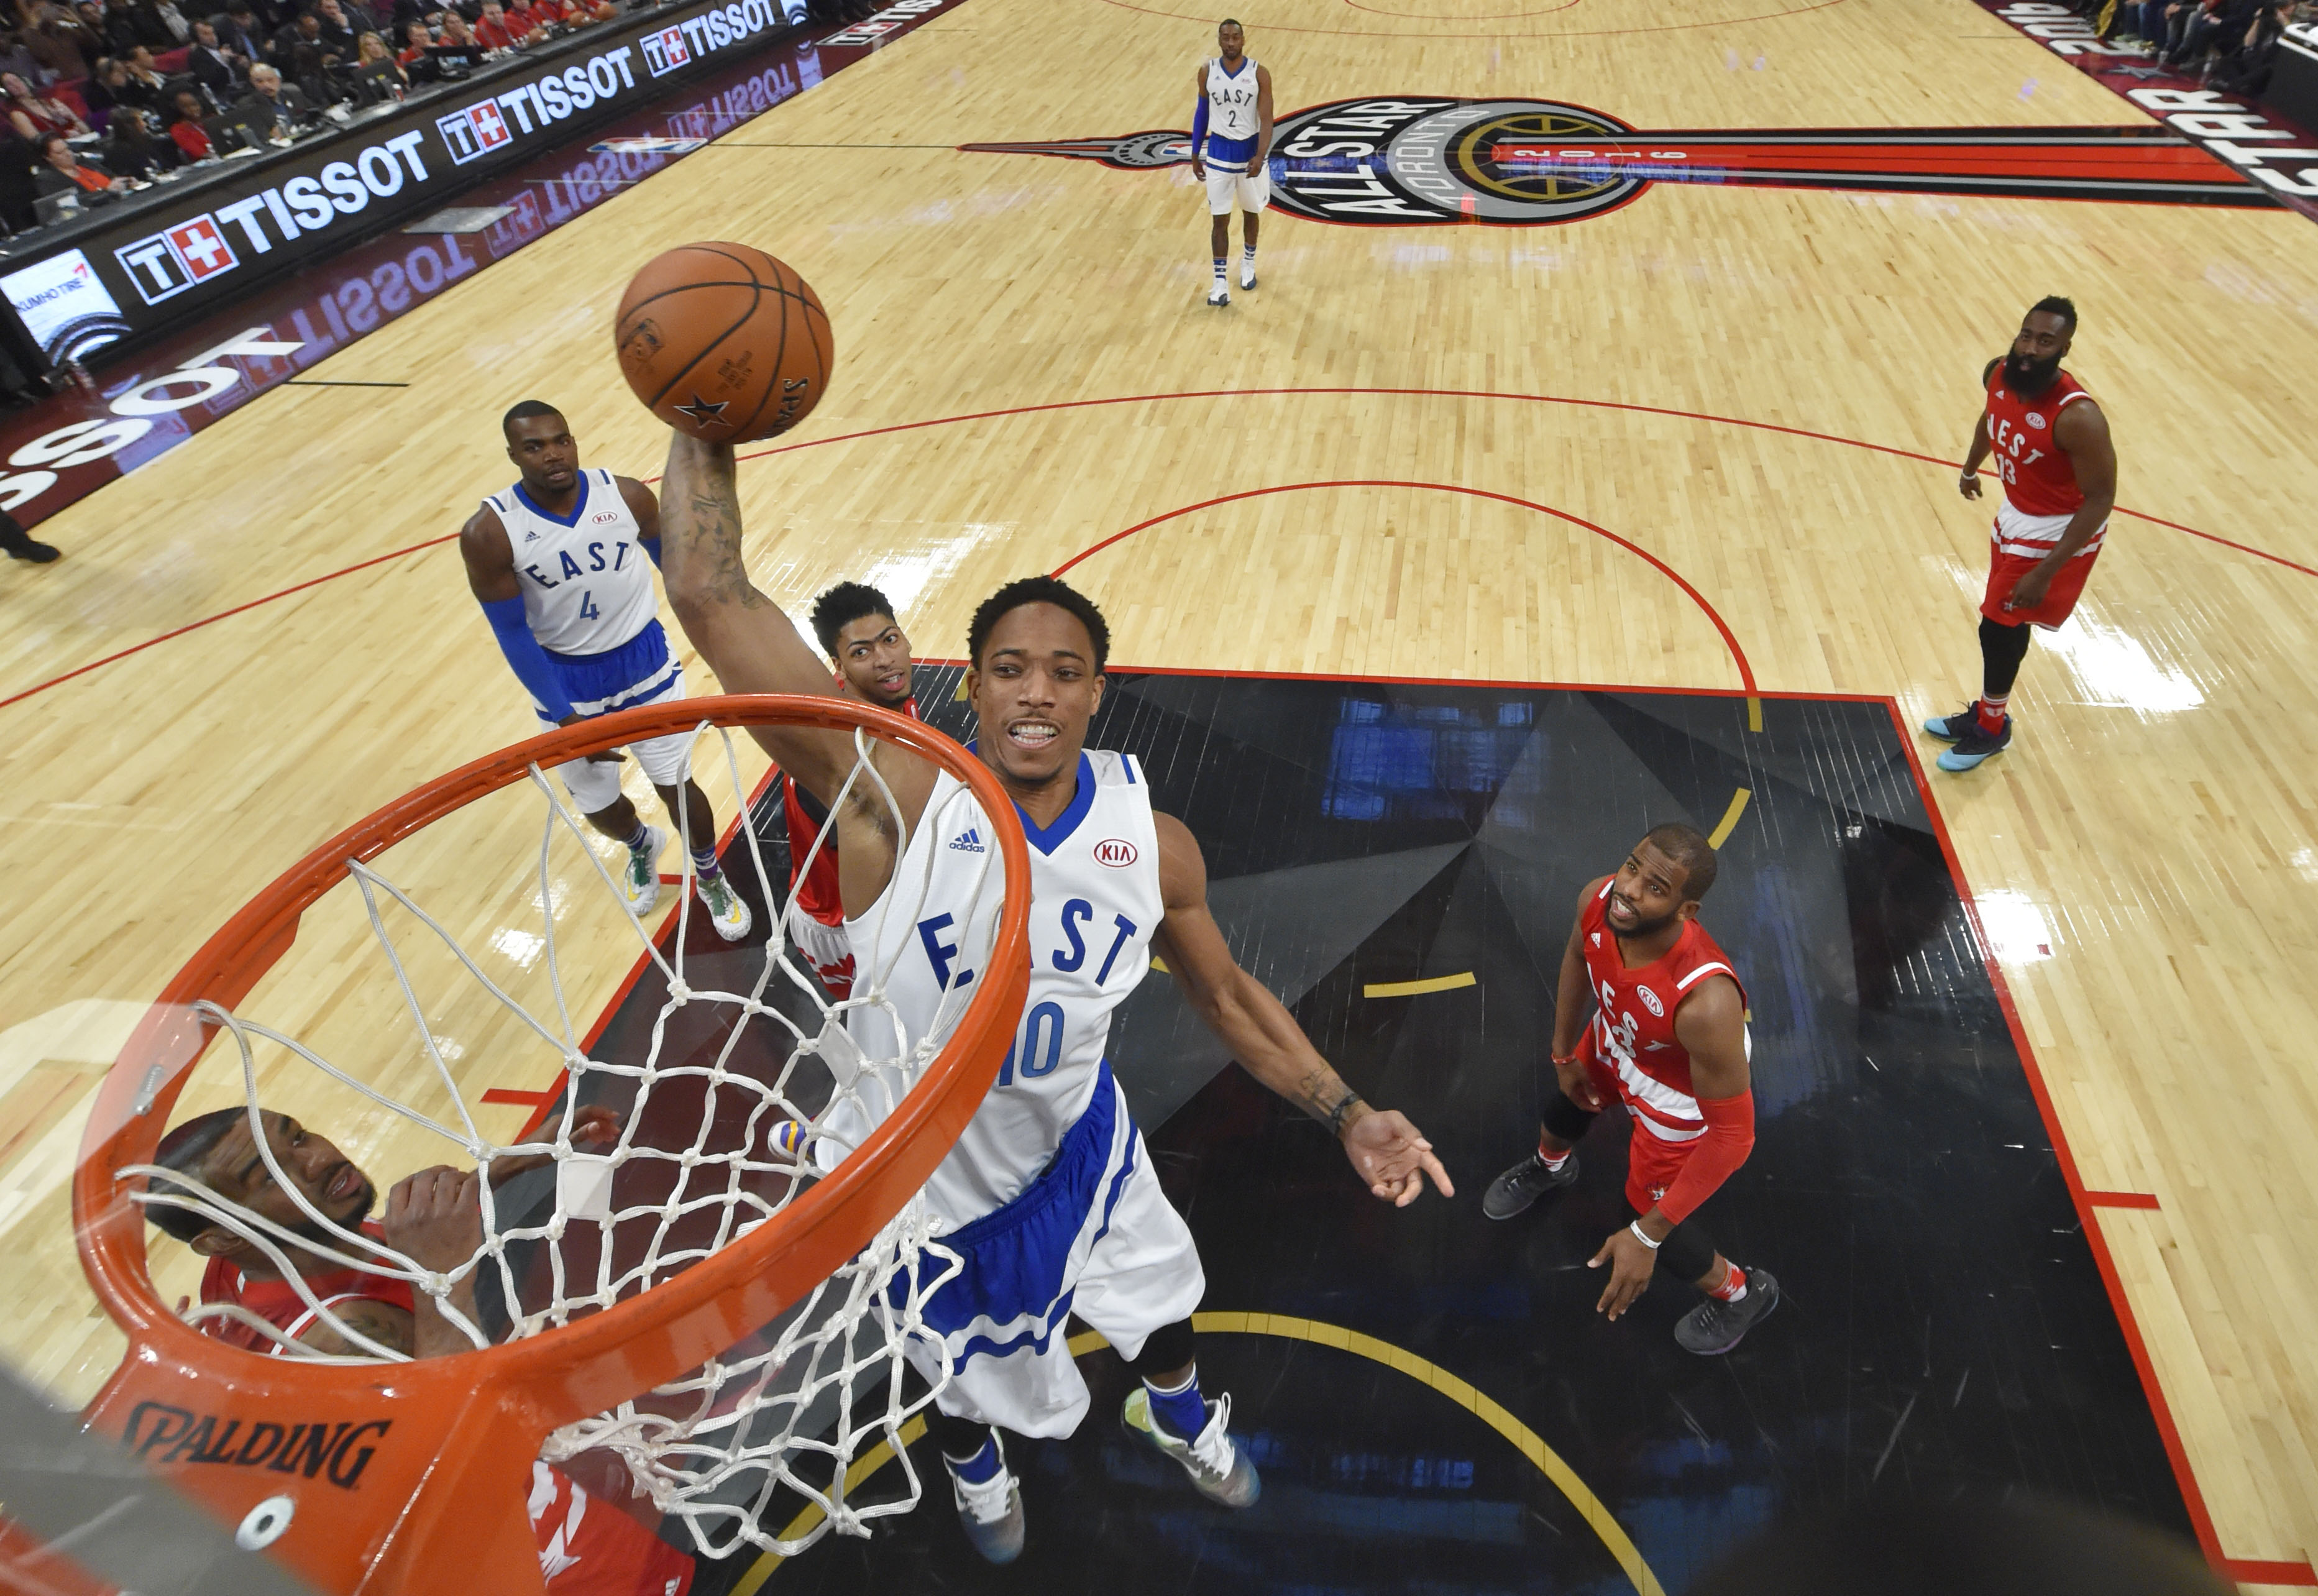 bd5c1008f40 Feb 14, 2016; Toronto, Ontario, CAN; Eastern Conference guard DeMar DeRozan  of the Toronto Raptors (10) goes up for a dunk during the NBA All Star Game  at ...